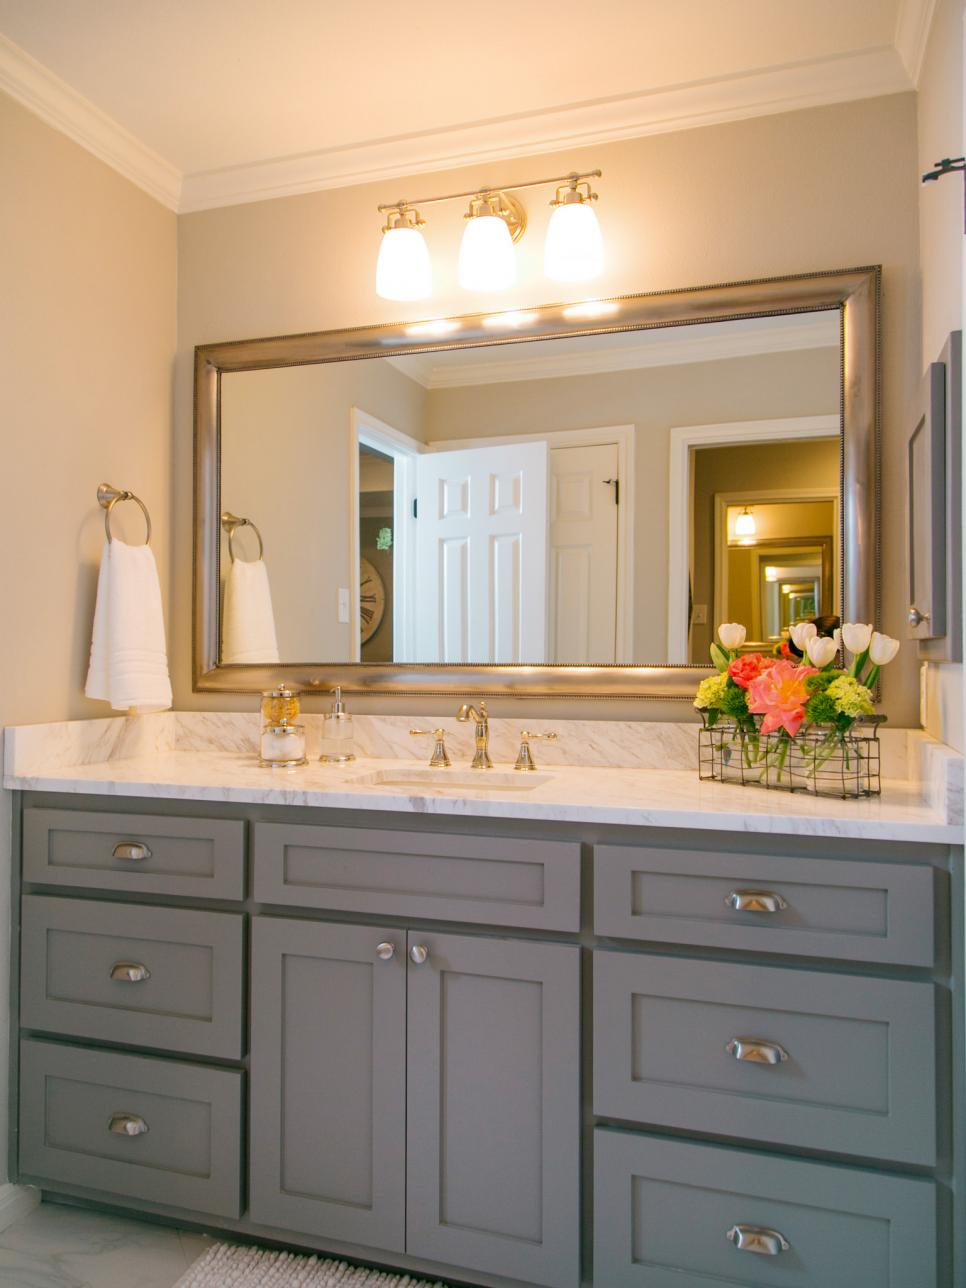 bathroom cabinet color ideas fixer upper a ranch home update in woodway texas hgtv s fixer upper with chip and joanna 8116